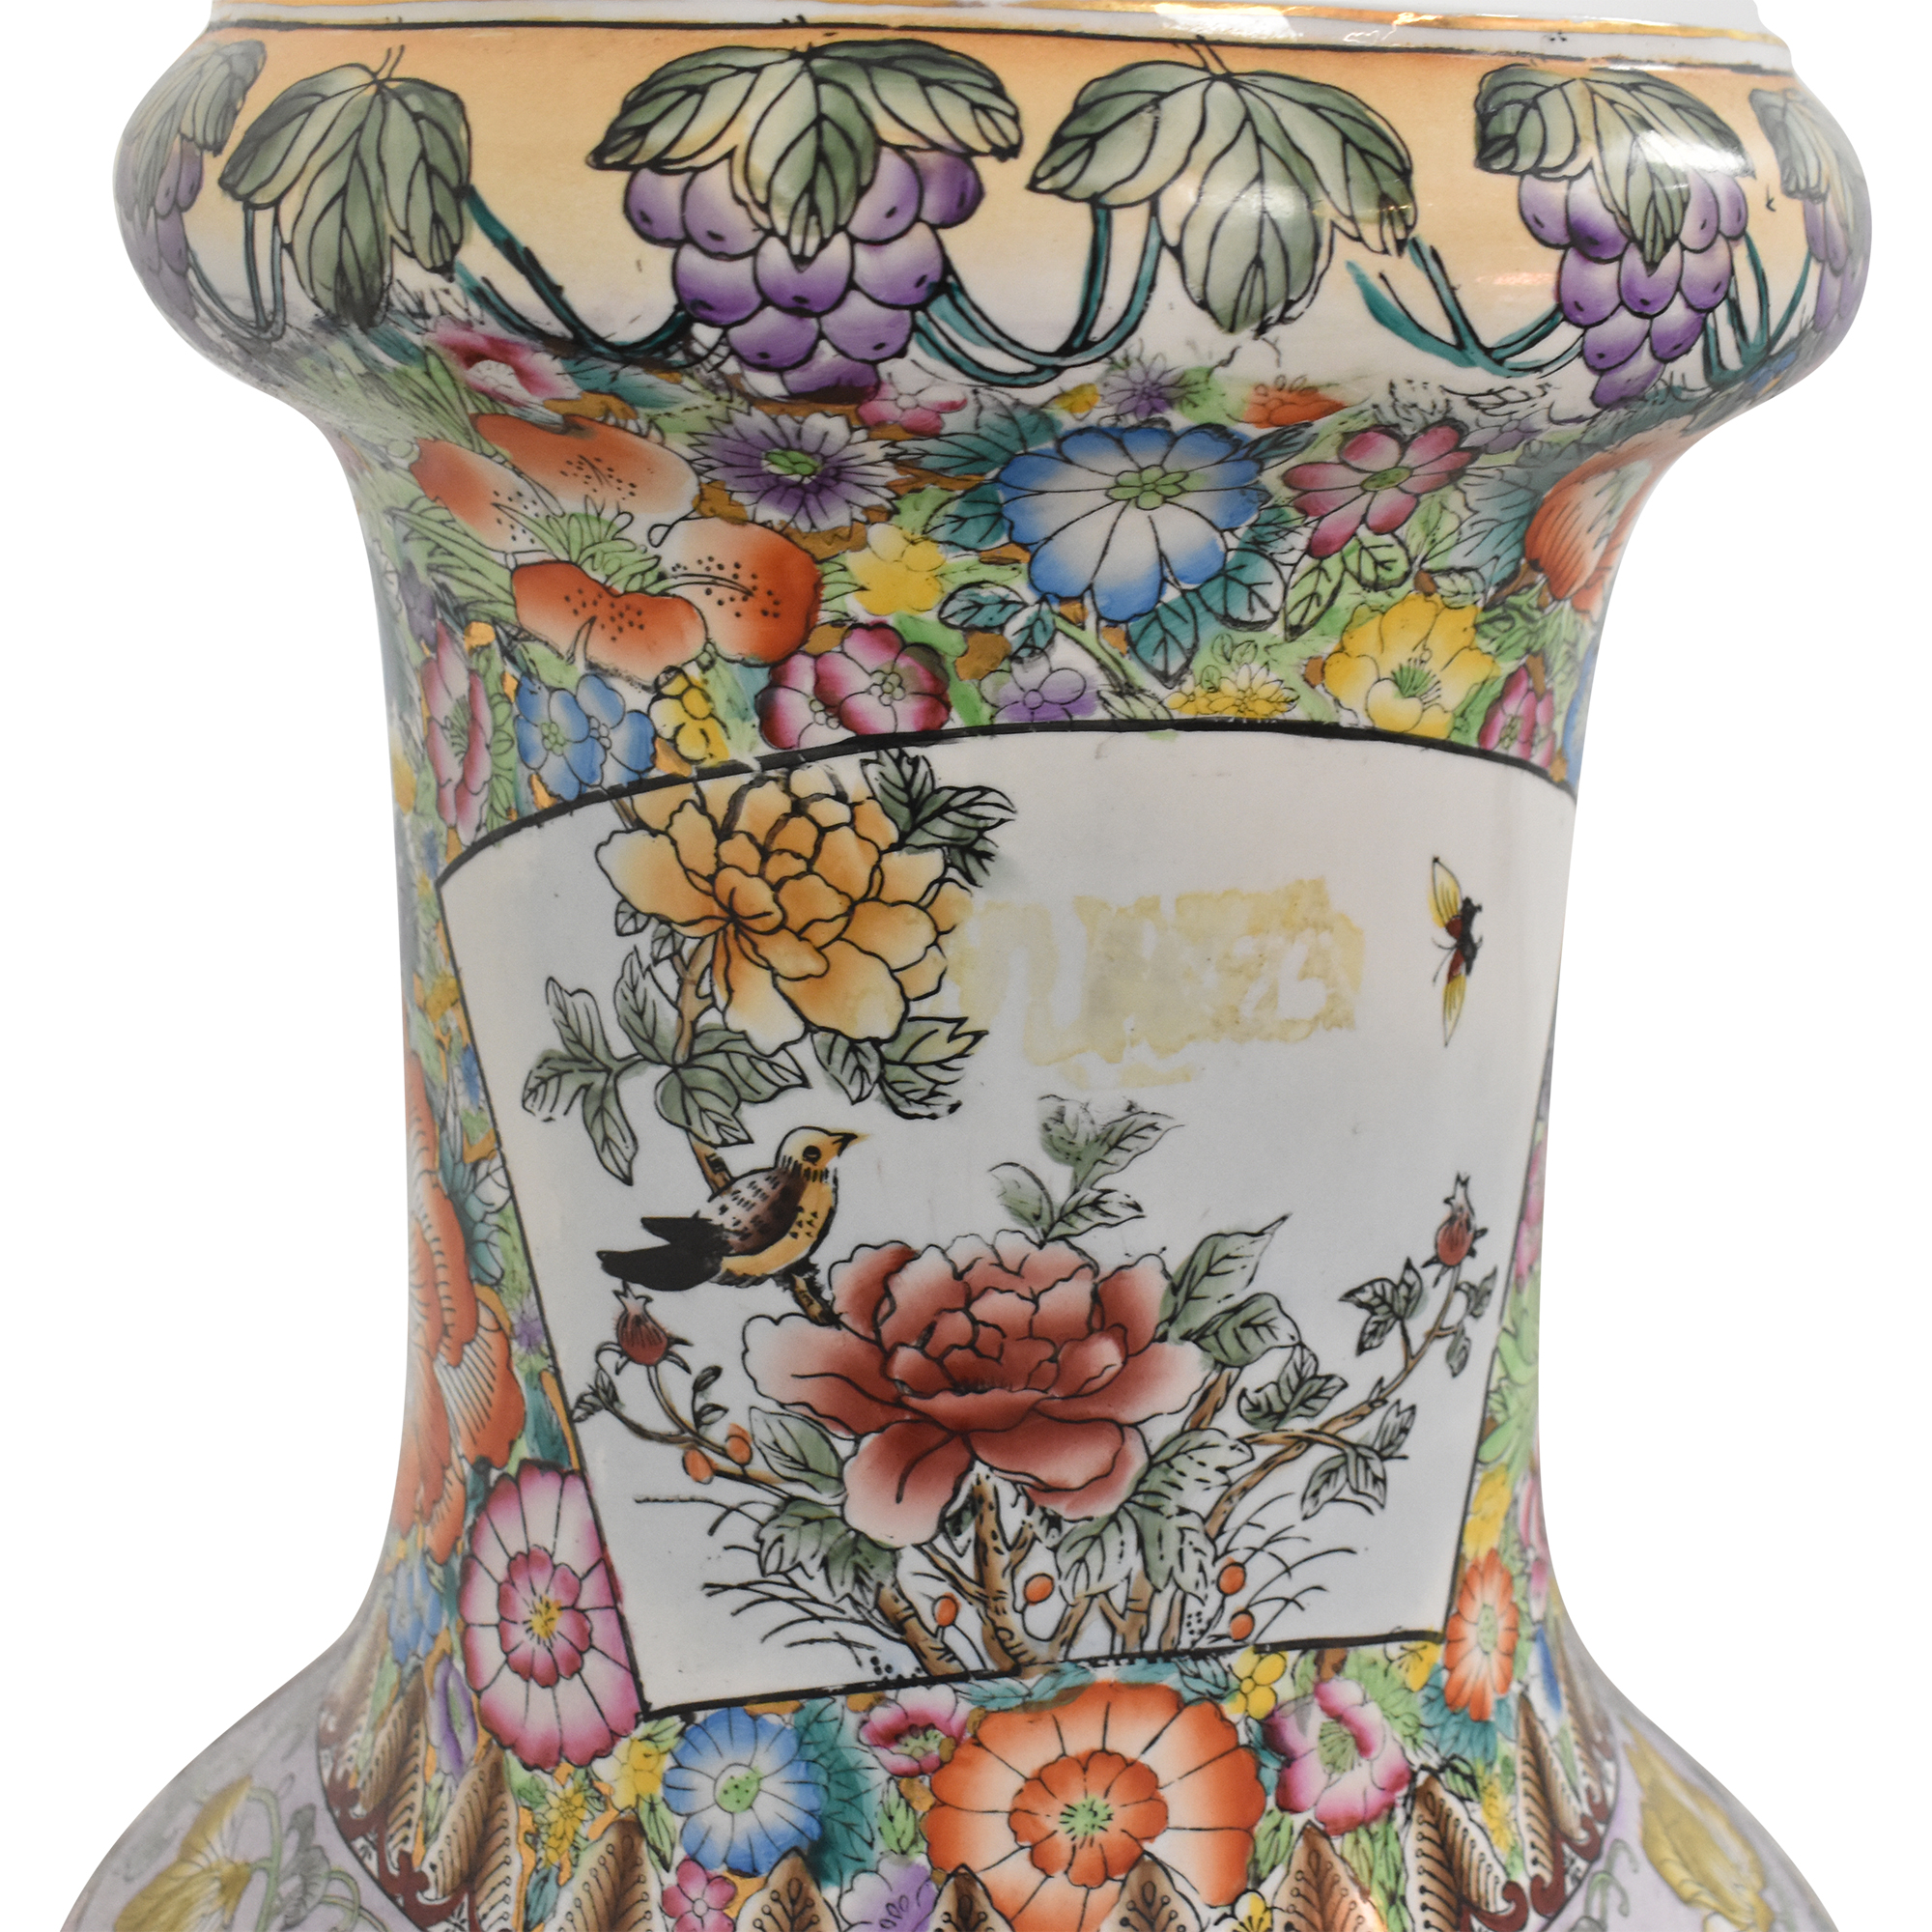 Japanese Style Decorative Vase second hand